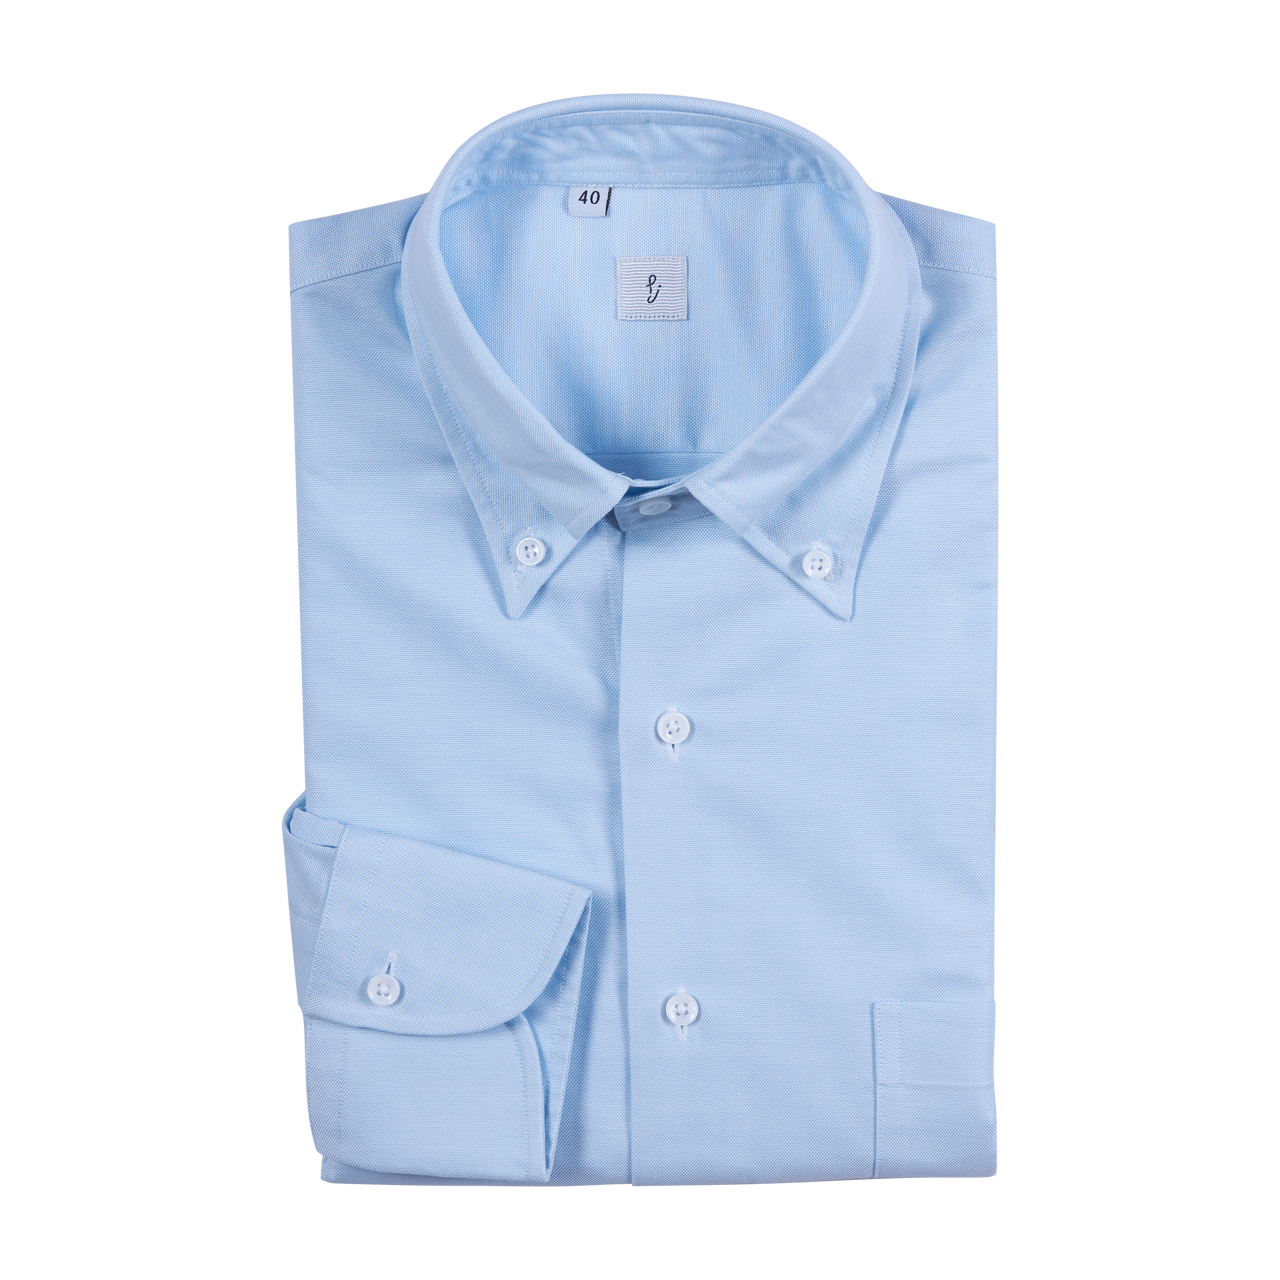 P. Johnson Shirt in Blue Oxford with Button Down Collar